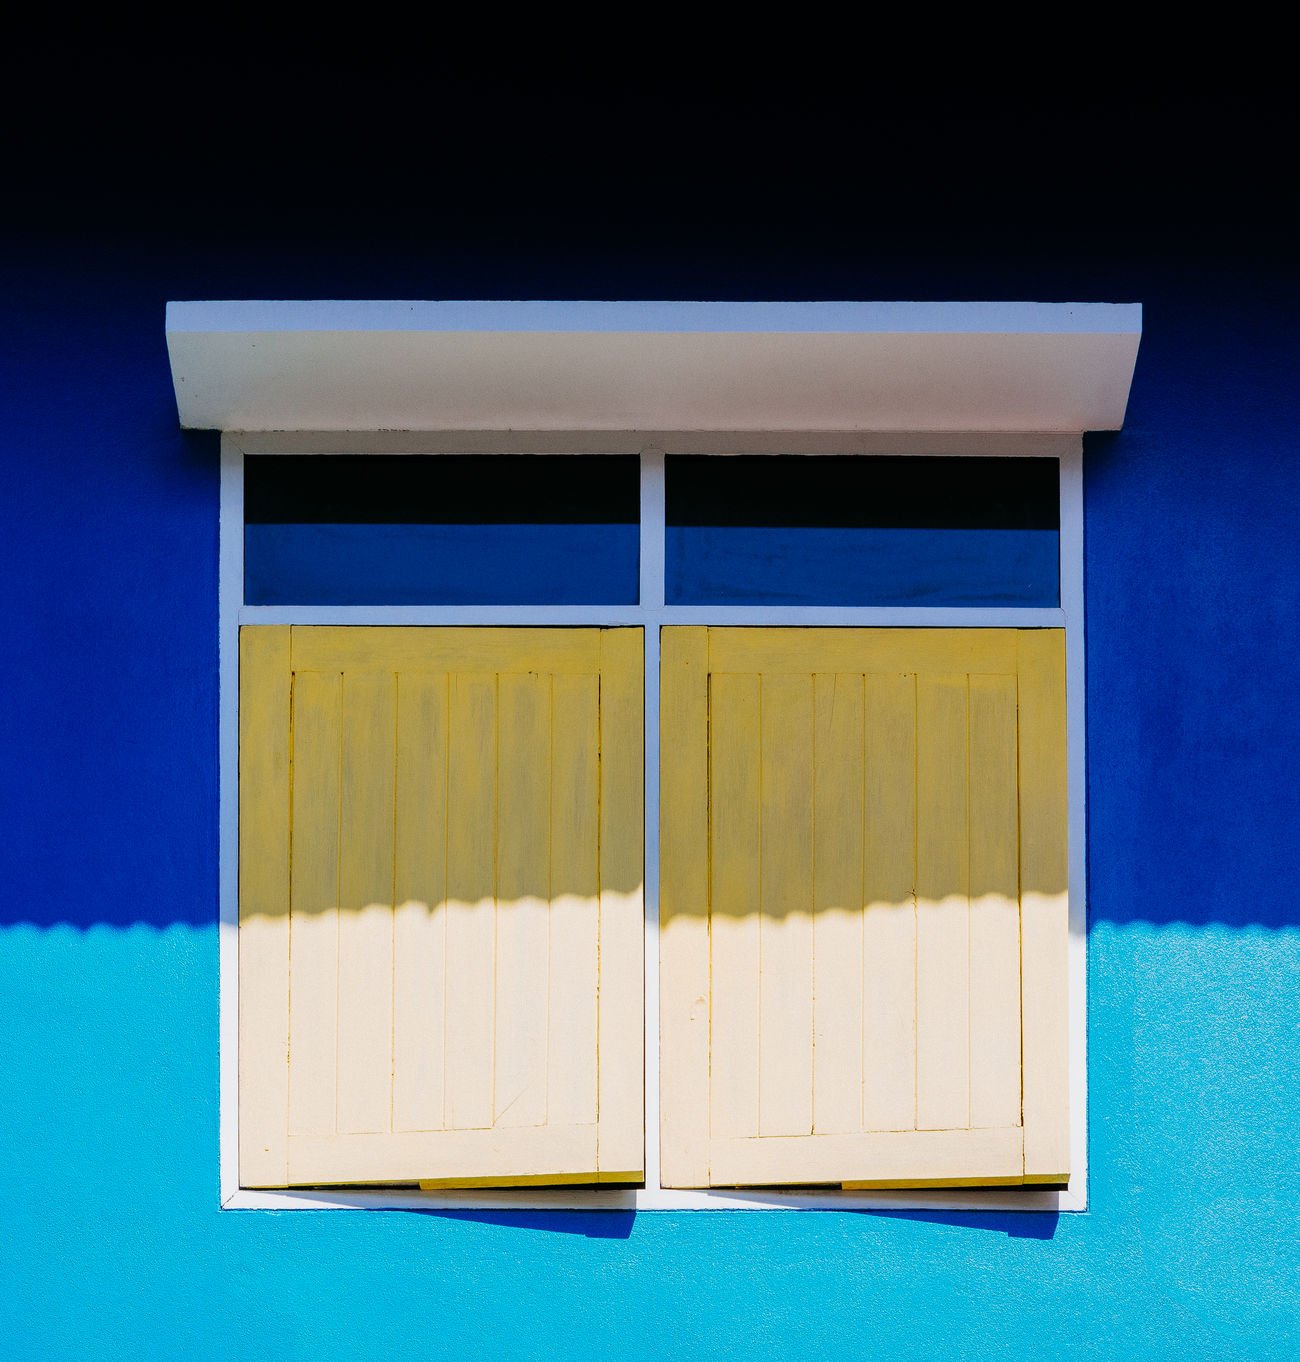 light and shadow Architecture Blue Day Multi Colored No People Shadow Shadows & Lights Shutter Window Yellow